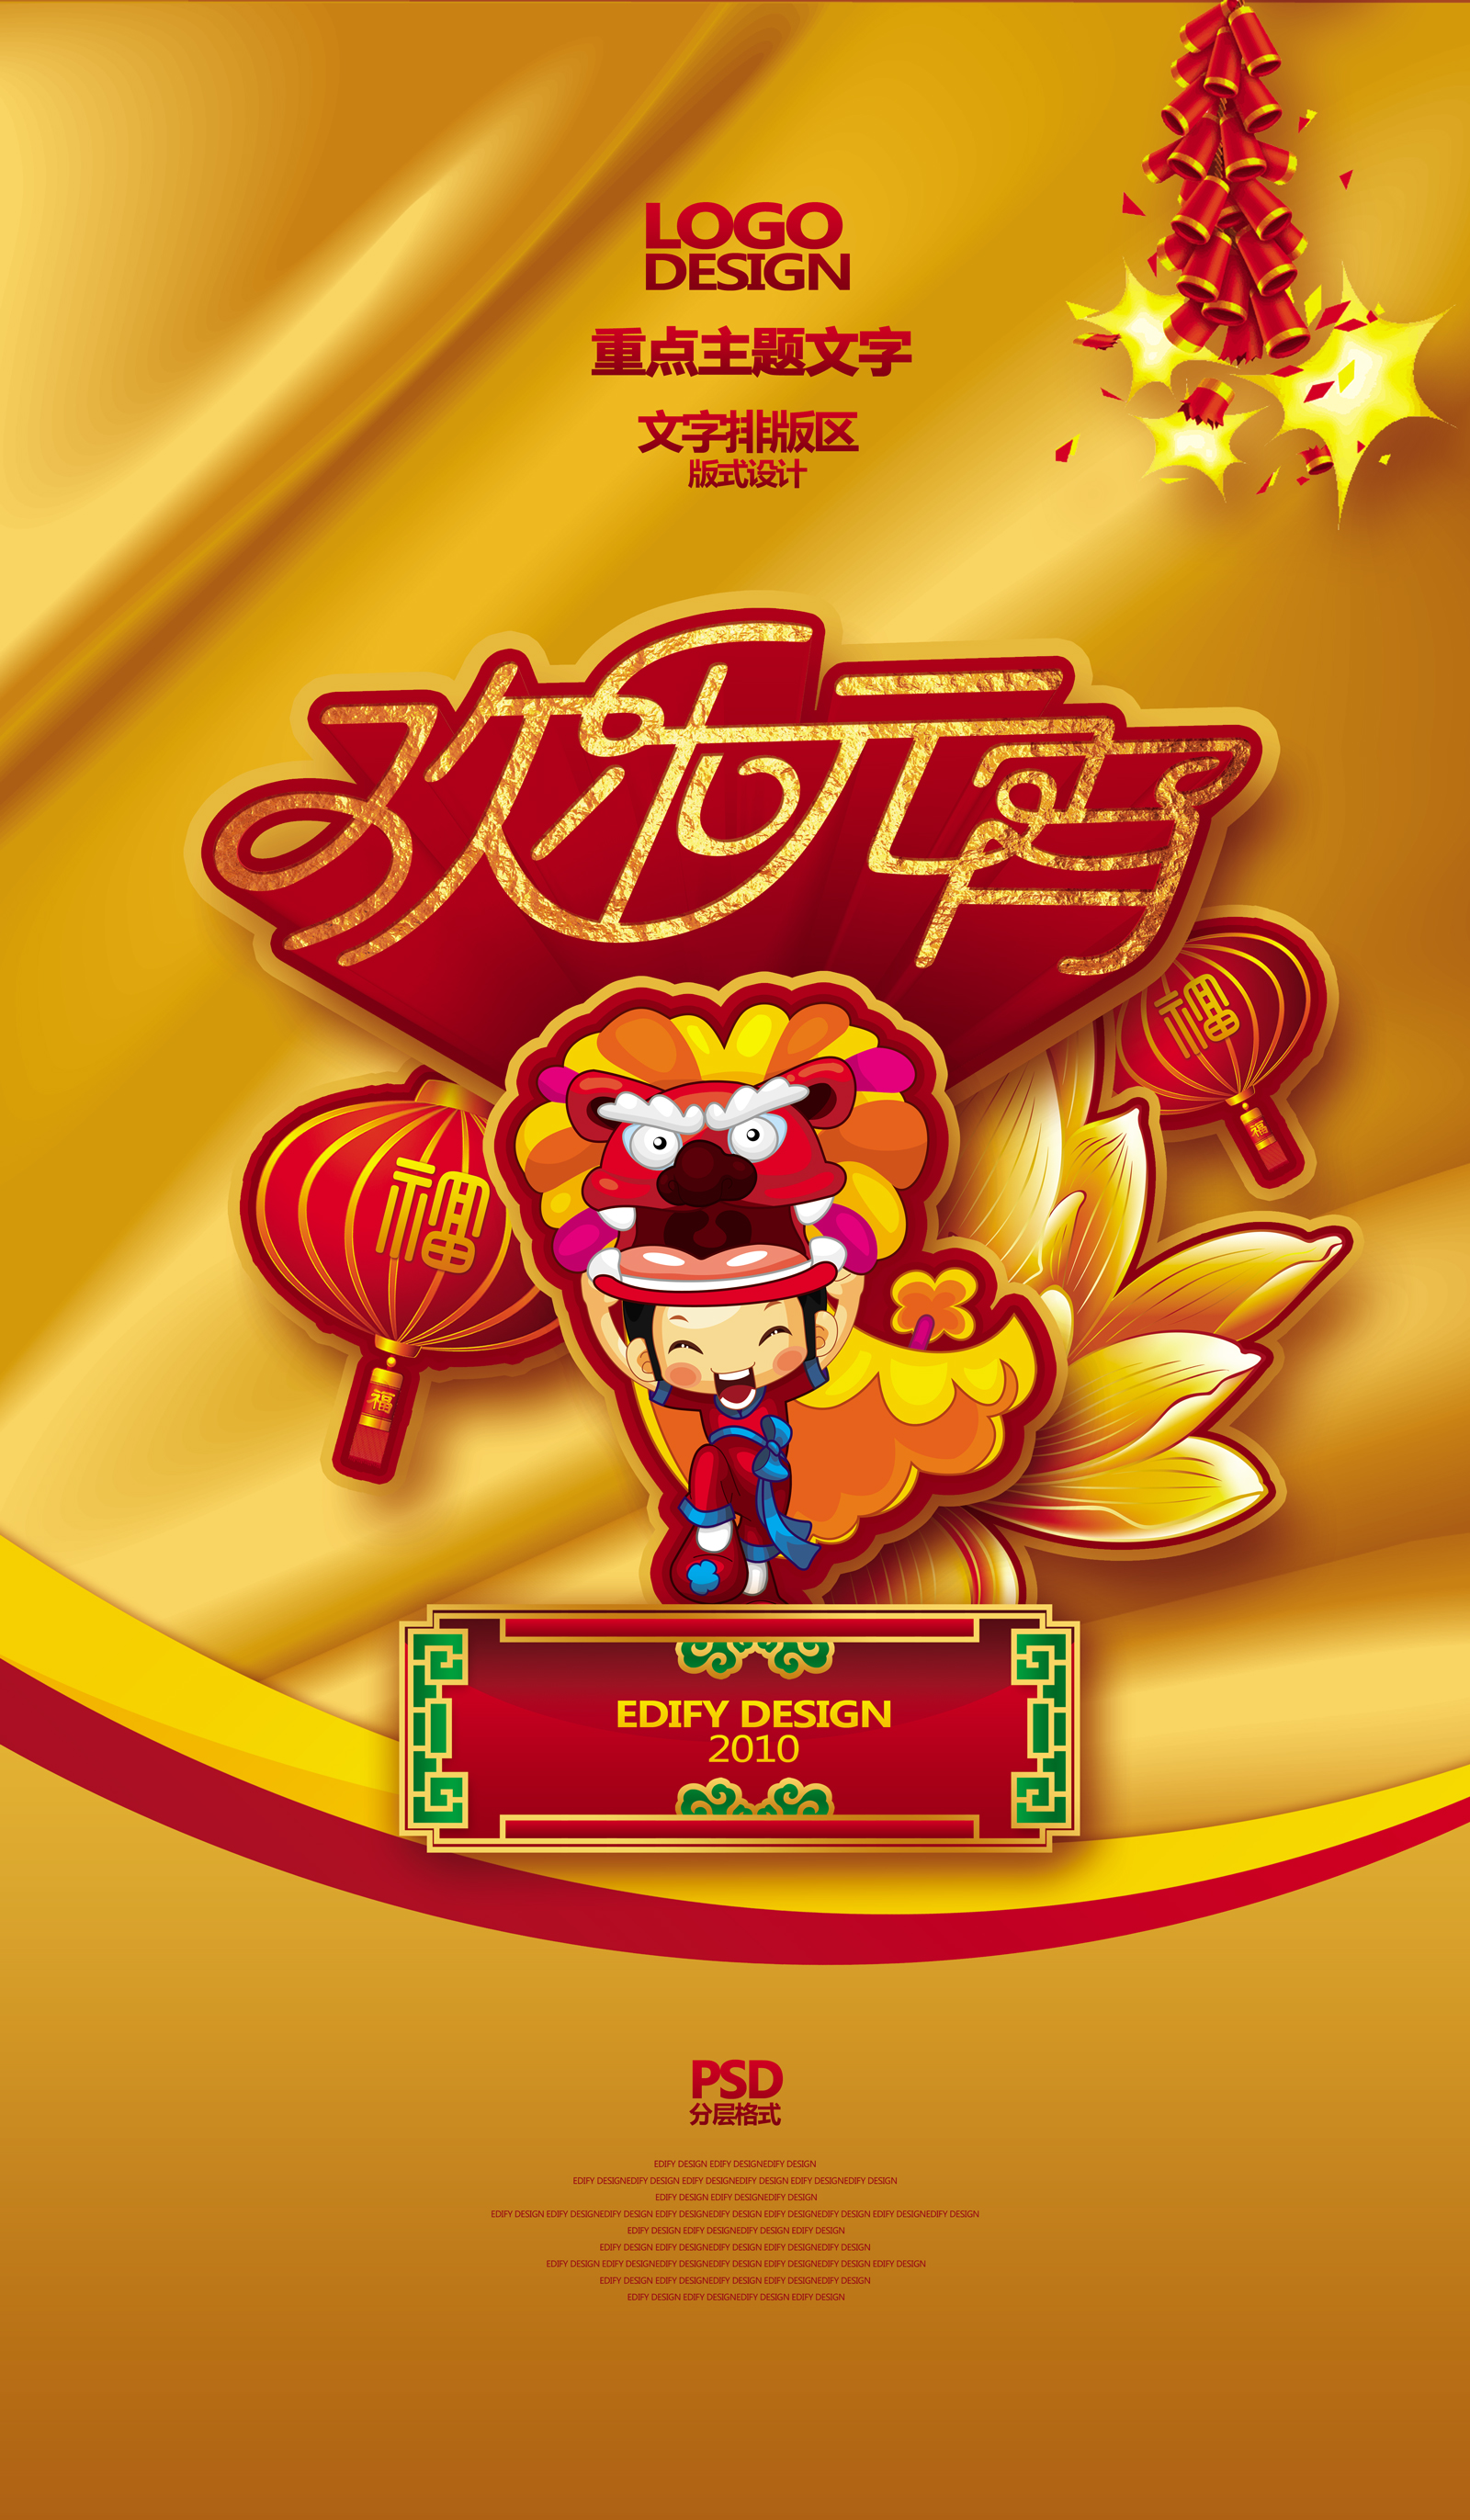 Happy Chinese traditional yuanxiao Lantern Festival celebrations - China PSD File Free Download